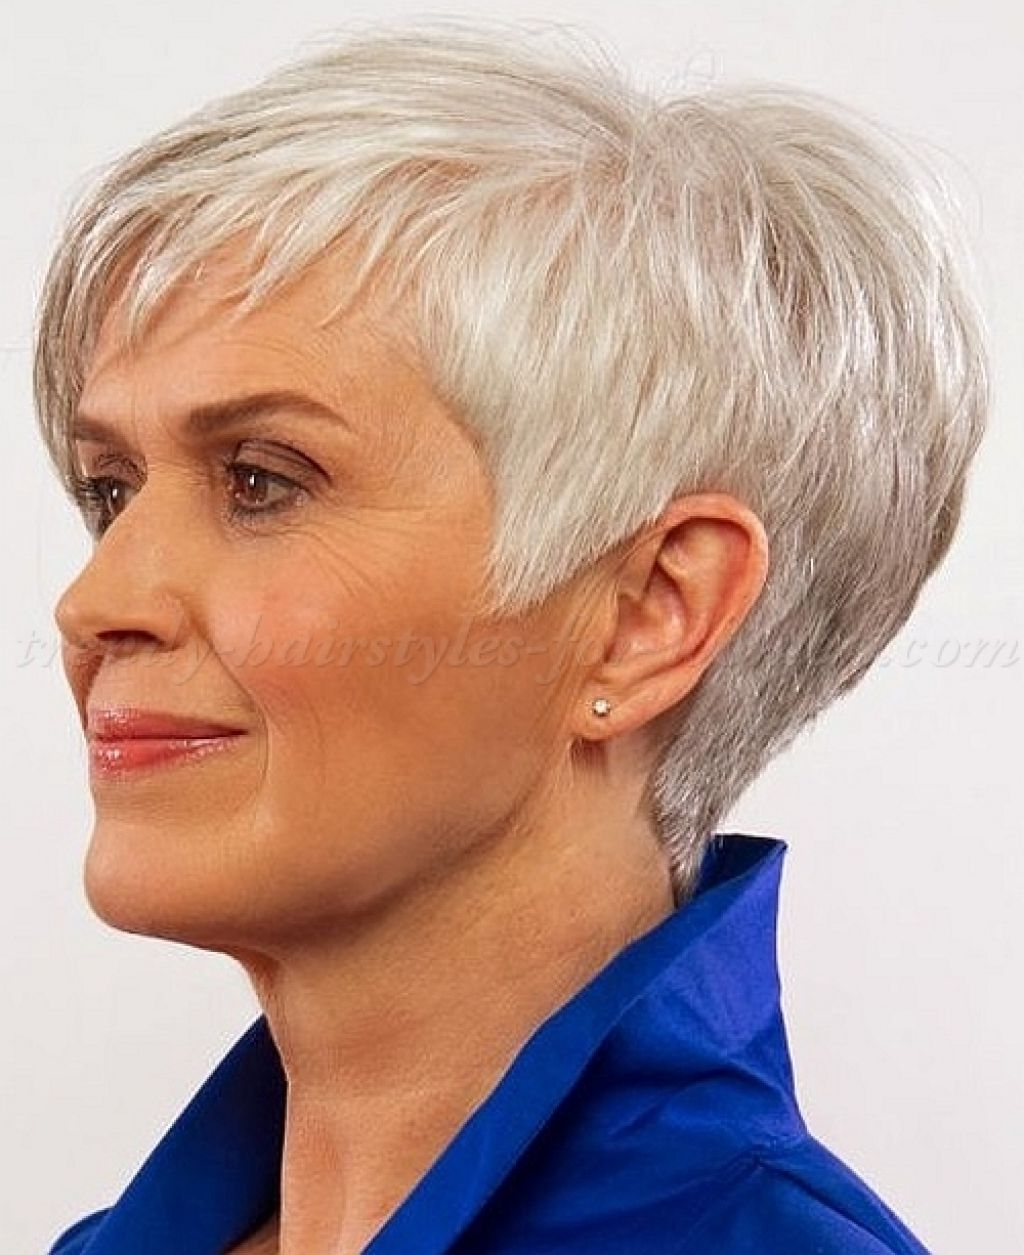 Gallery Of Pixie Hairstyles For Women Over 60 View 4 Of 15 Photos